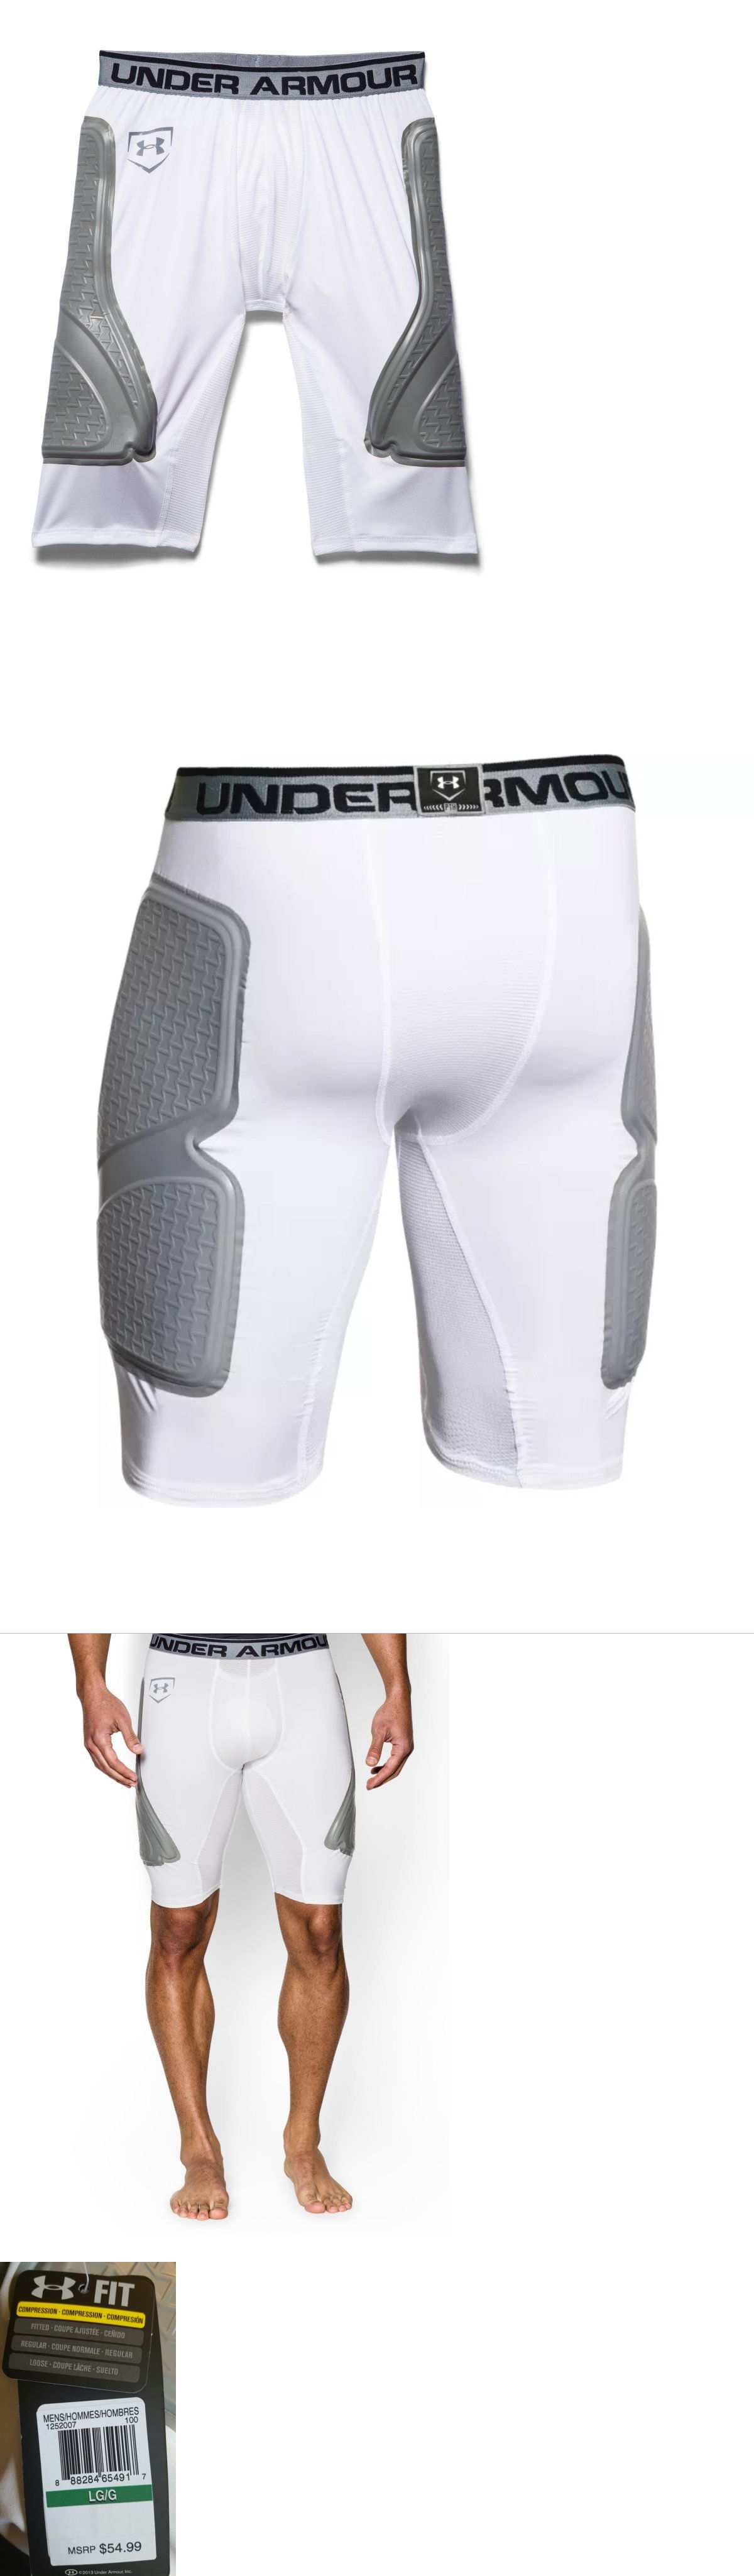 under armour baseball compression shorts